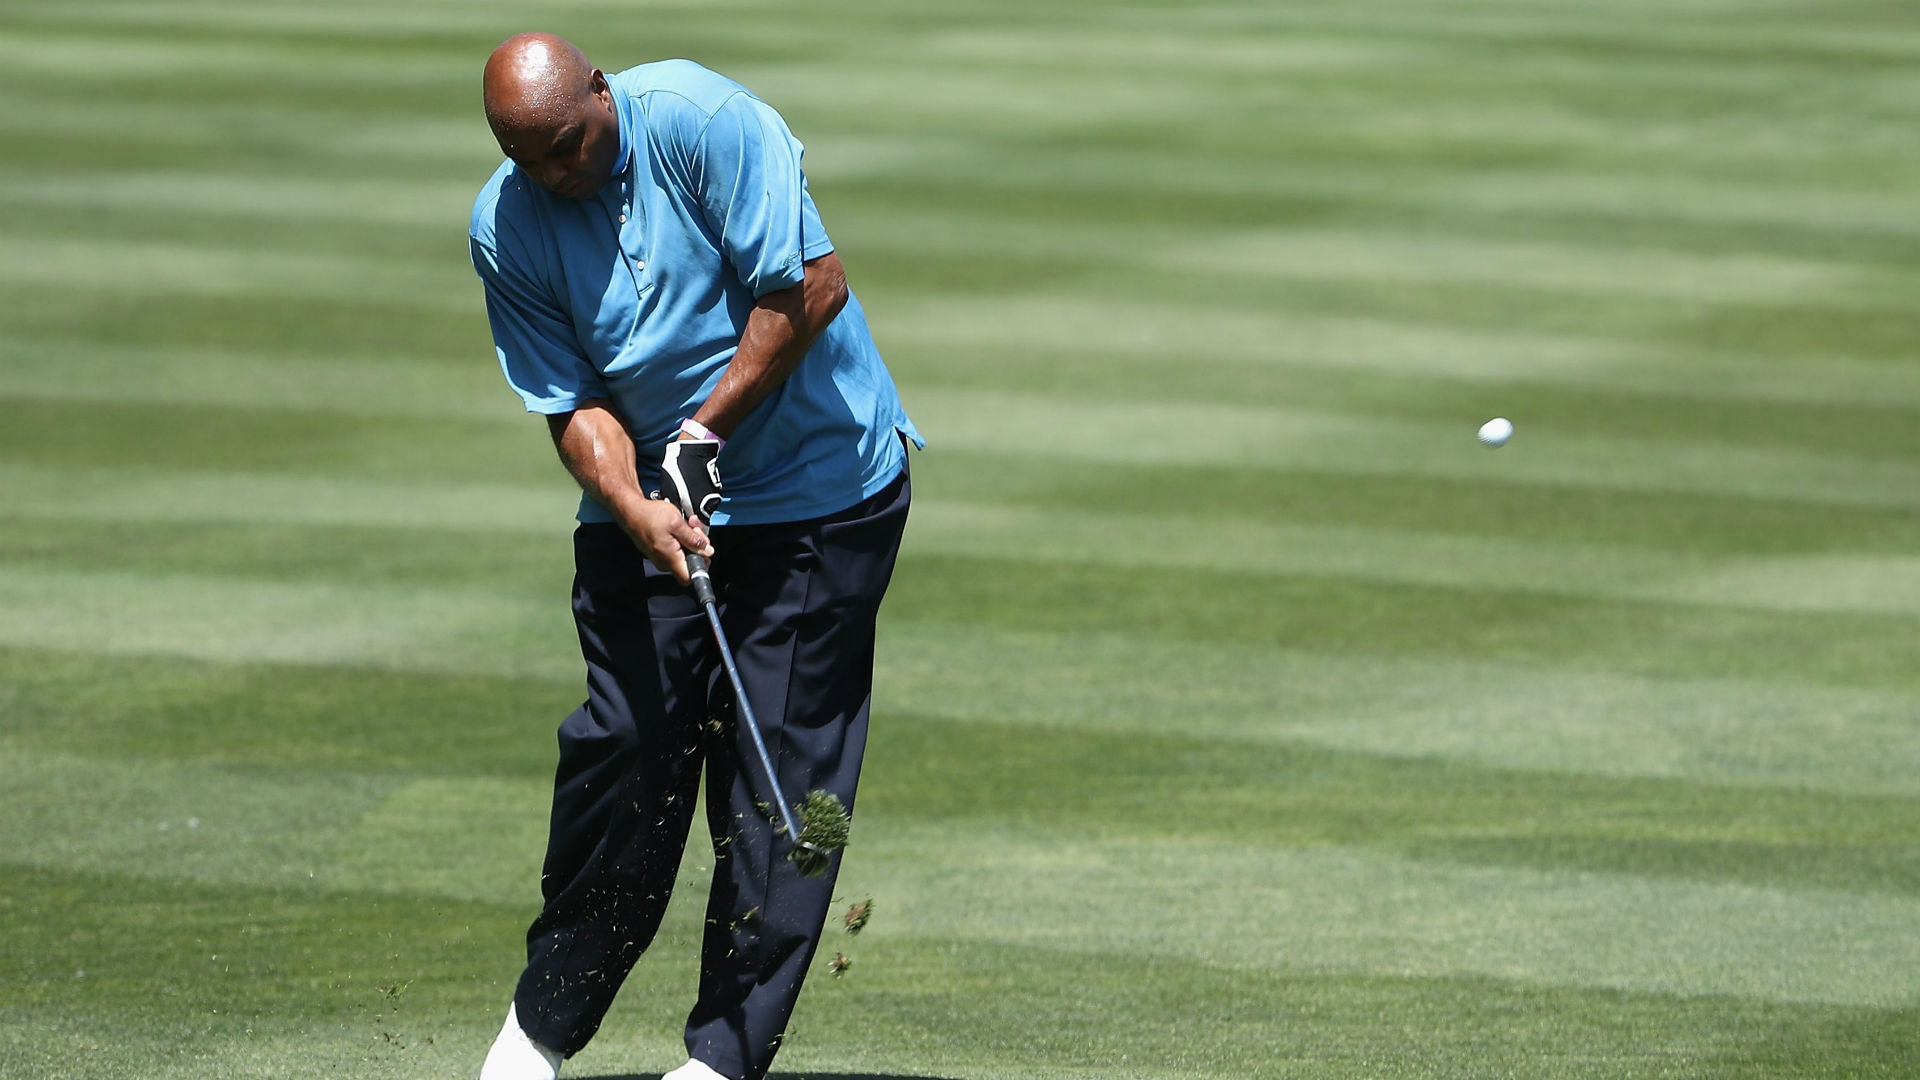 Charles Barkley's golf swing is the reason he's playing on different tees at The Match 3